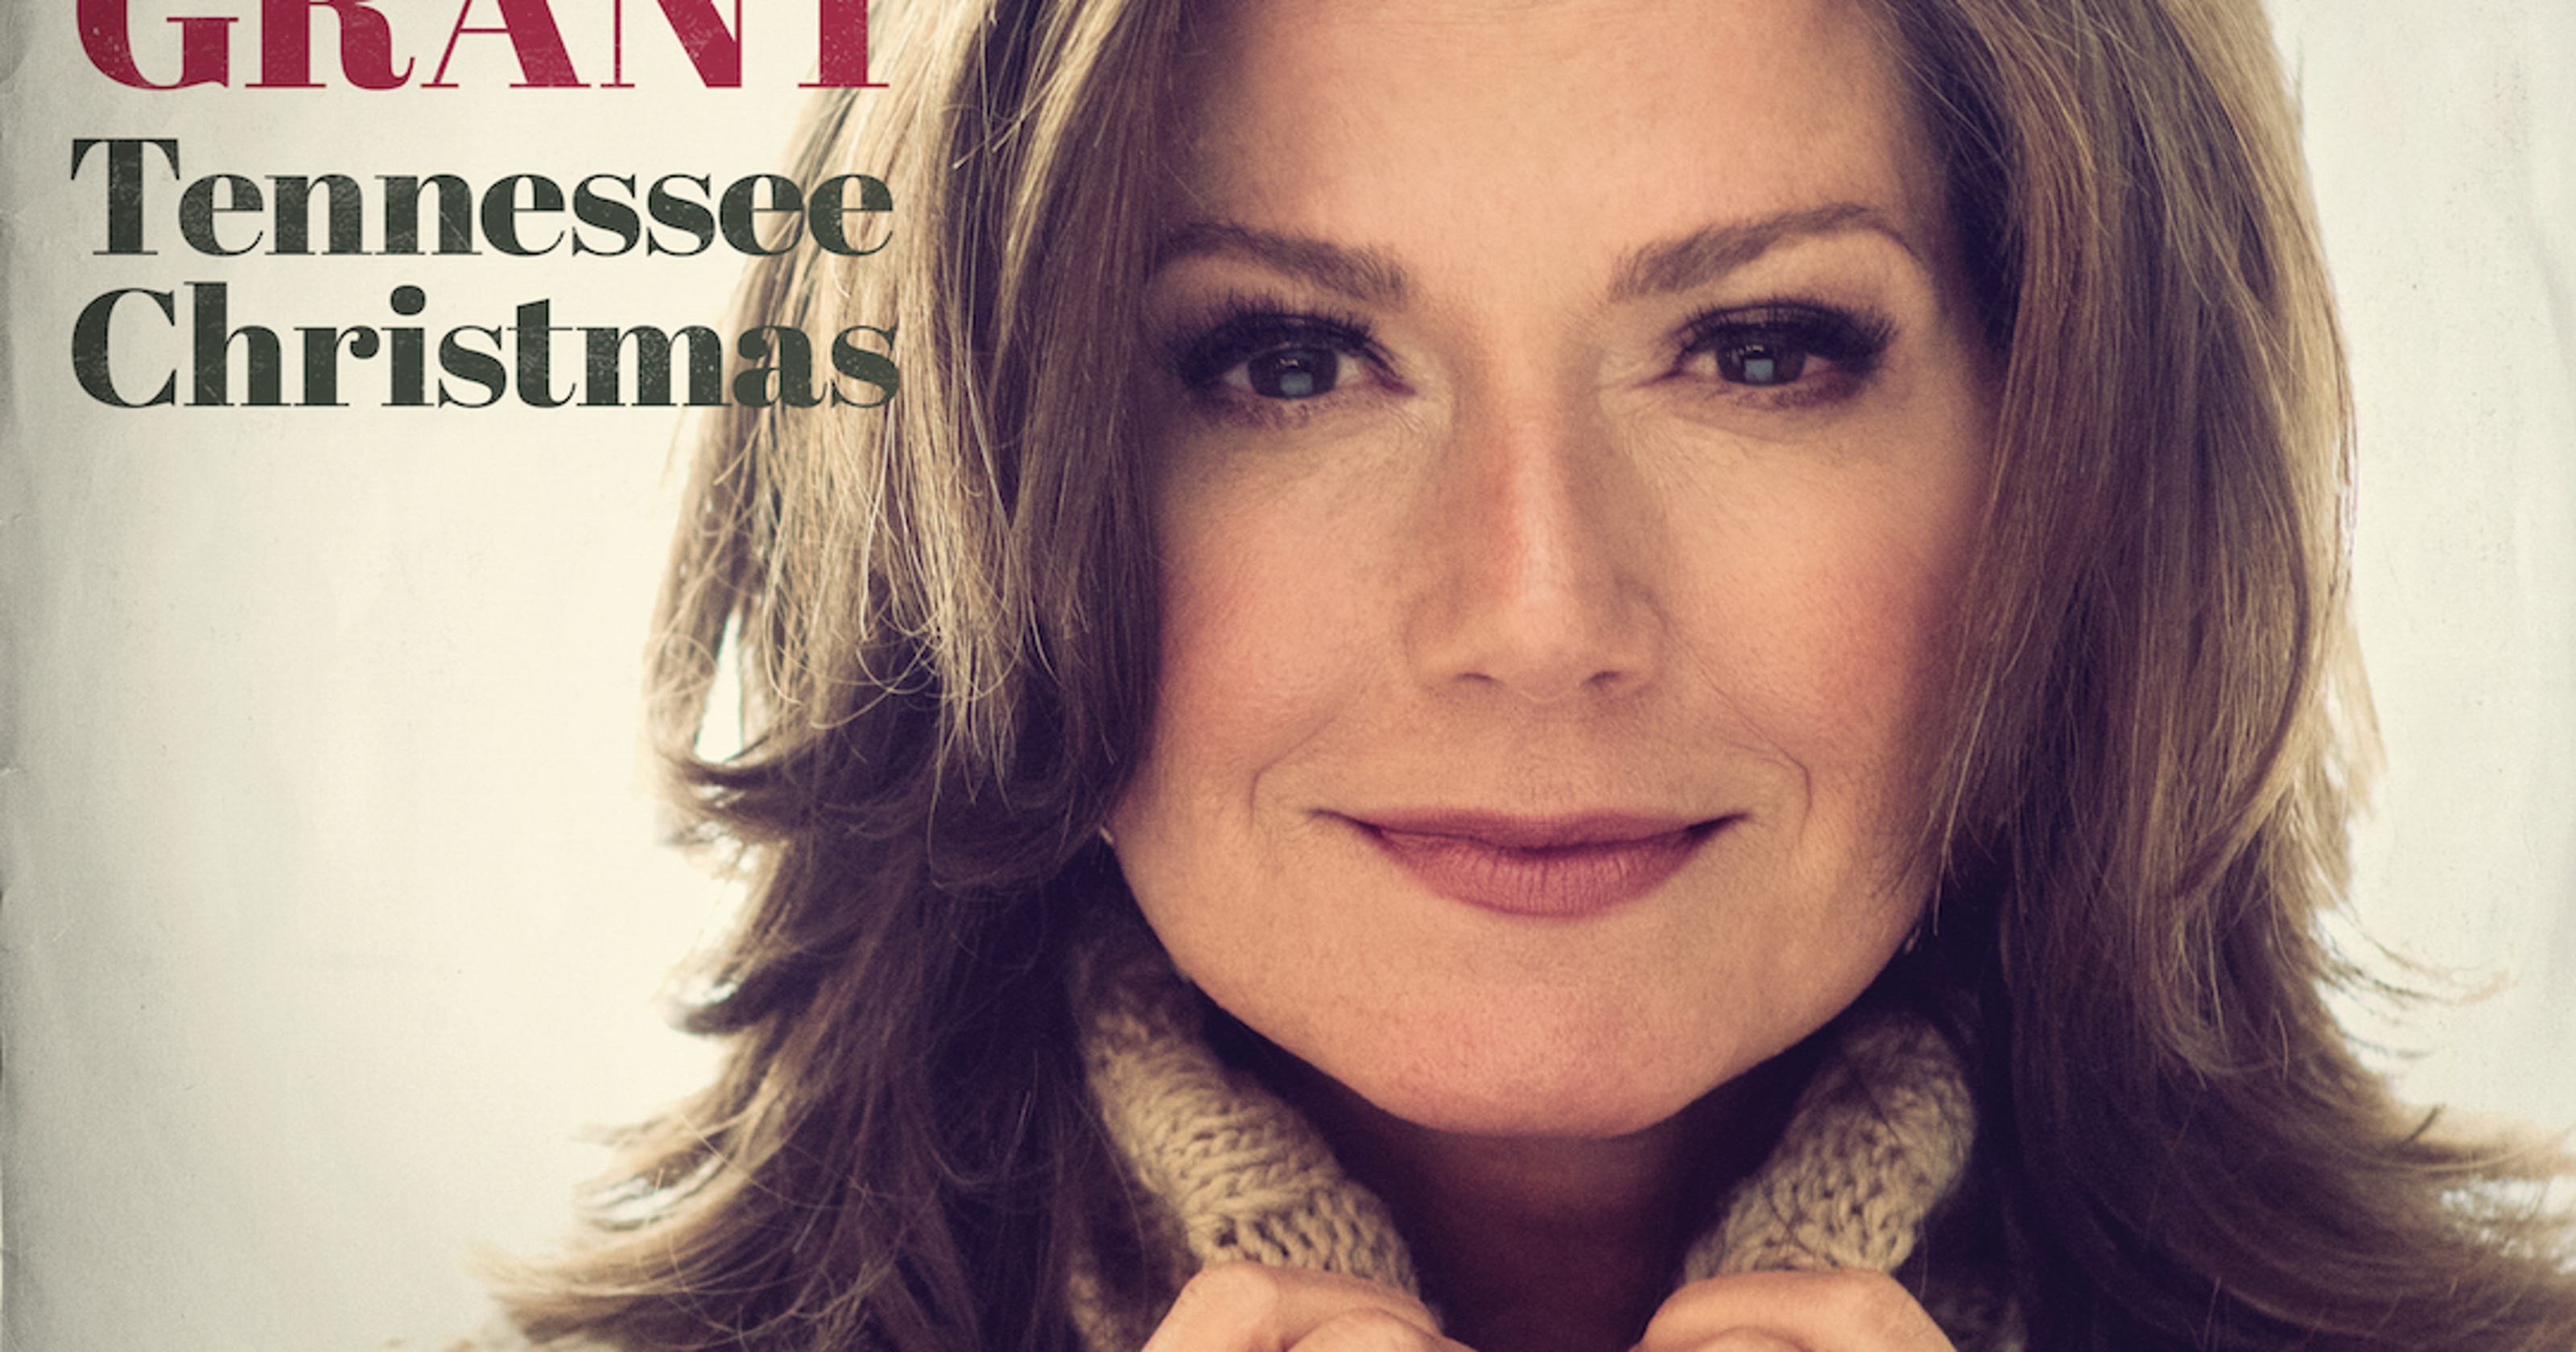 LifeWay stores say no to Amy Grant\'s Christmas album